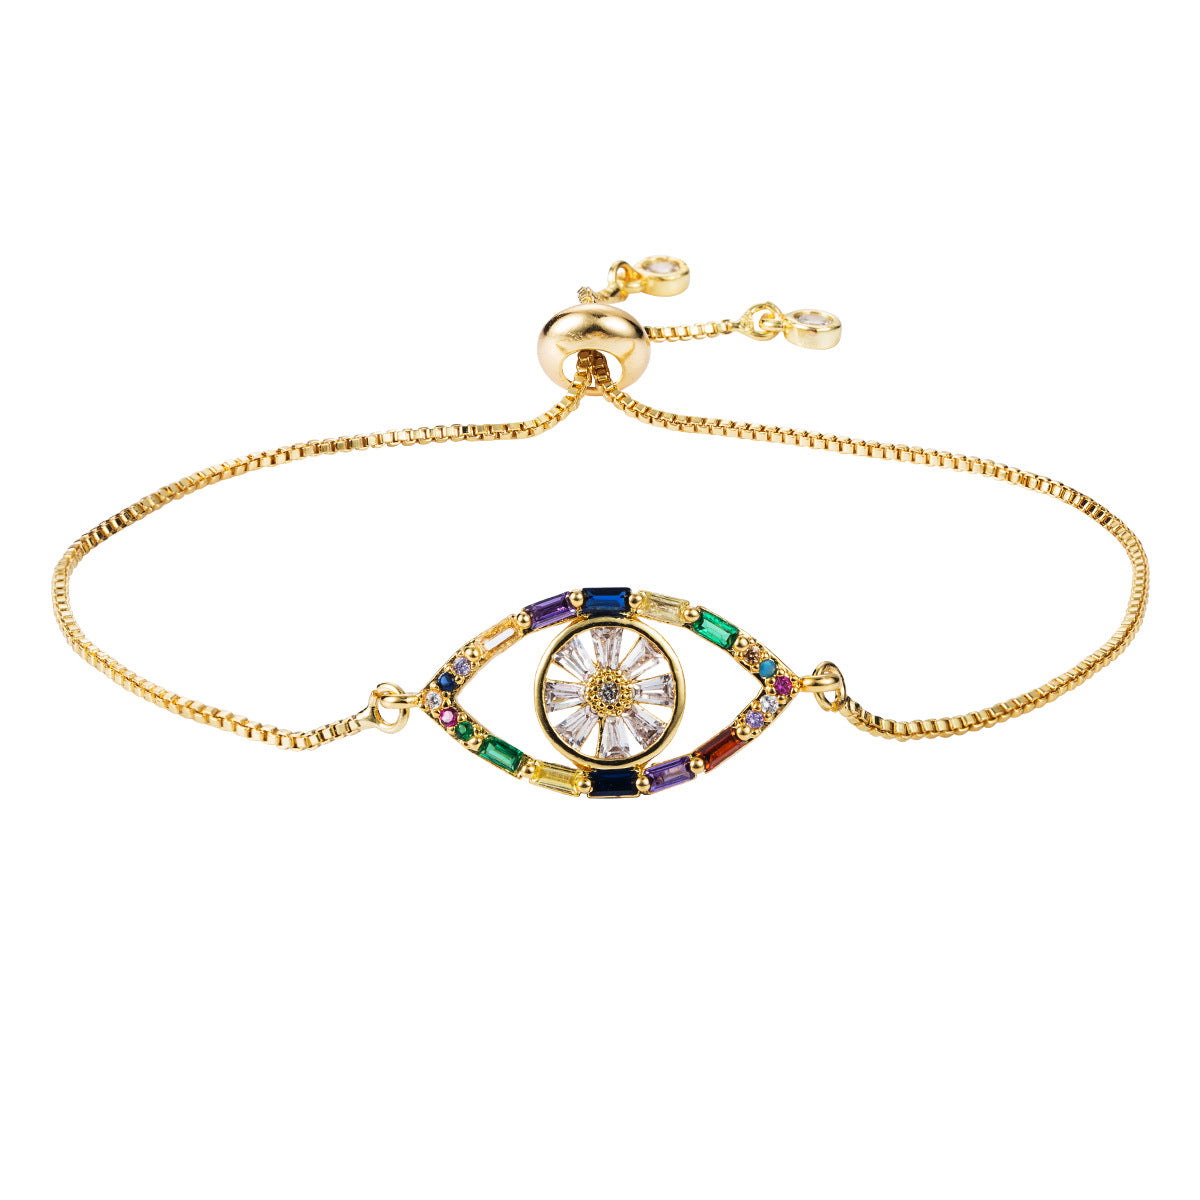 Buy beautiful Awaken Eye Multi-Color Gold Bracelet - AWKN Jewelry's